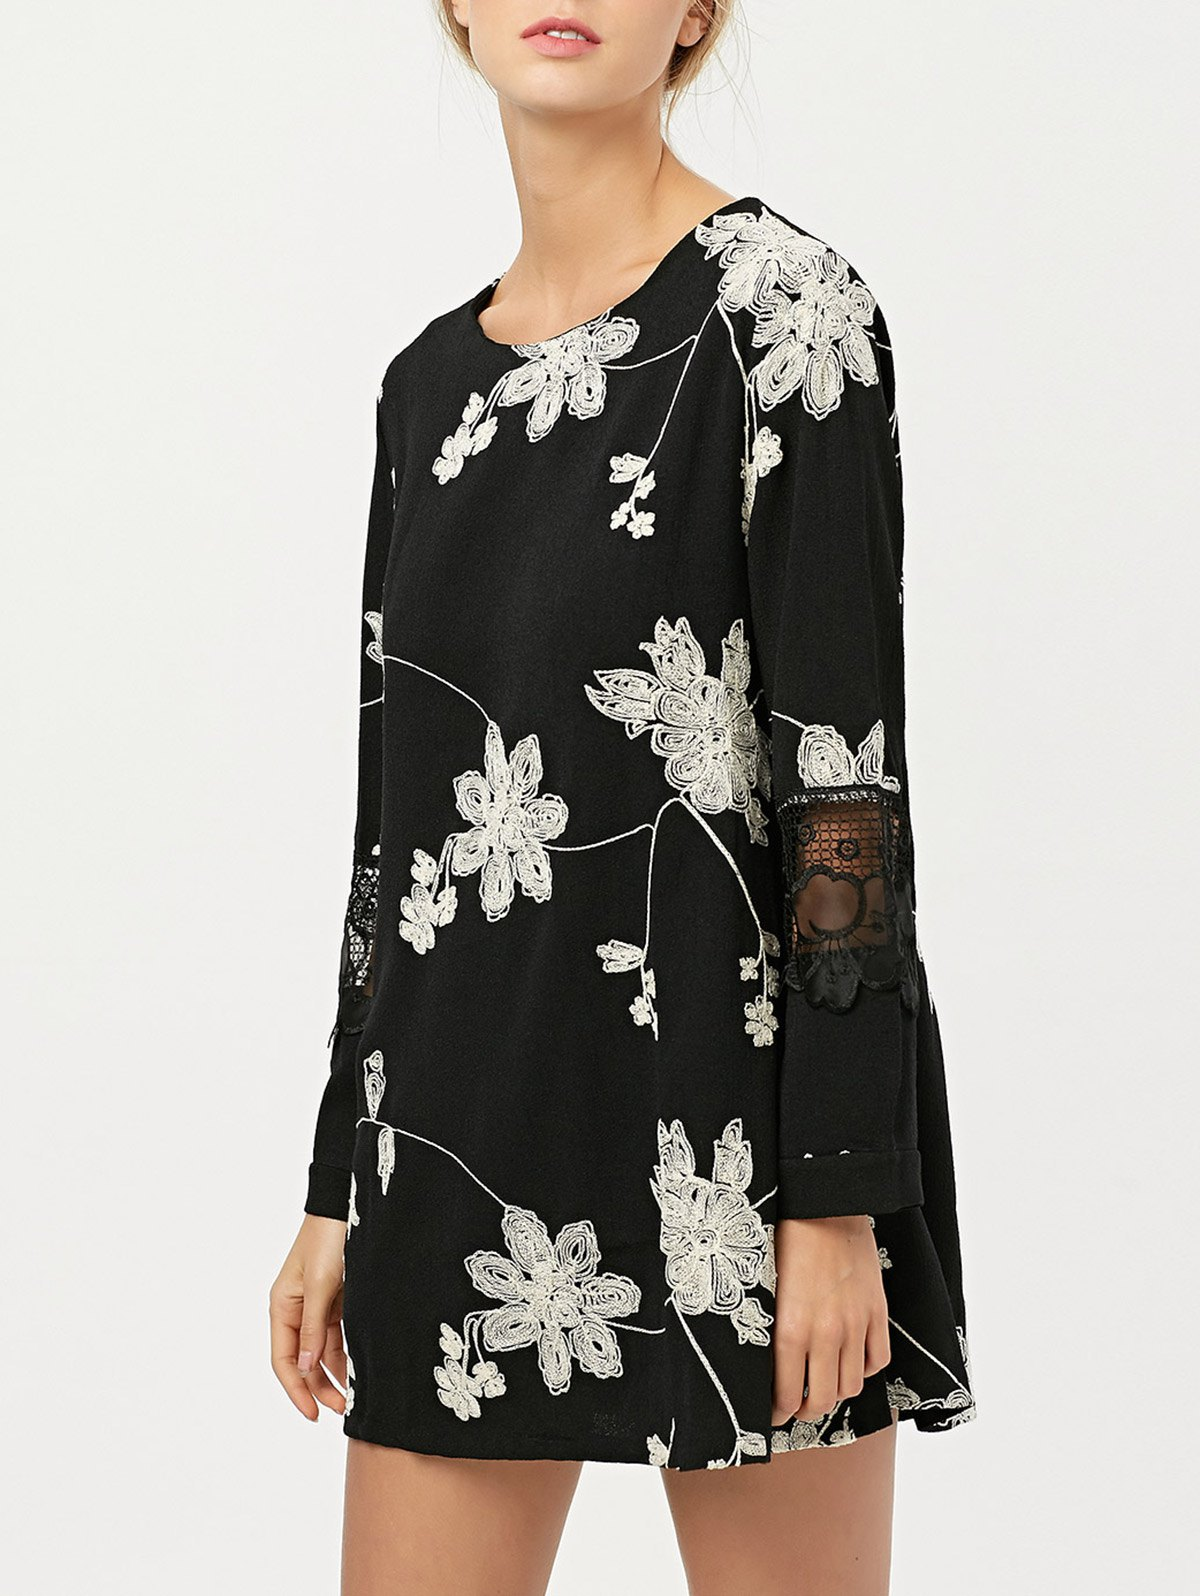 Lace Panel Floral Embroidered Chiffon Dress